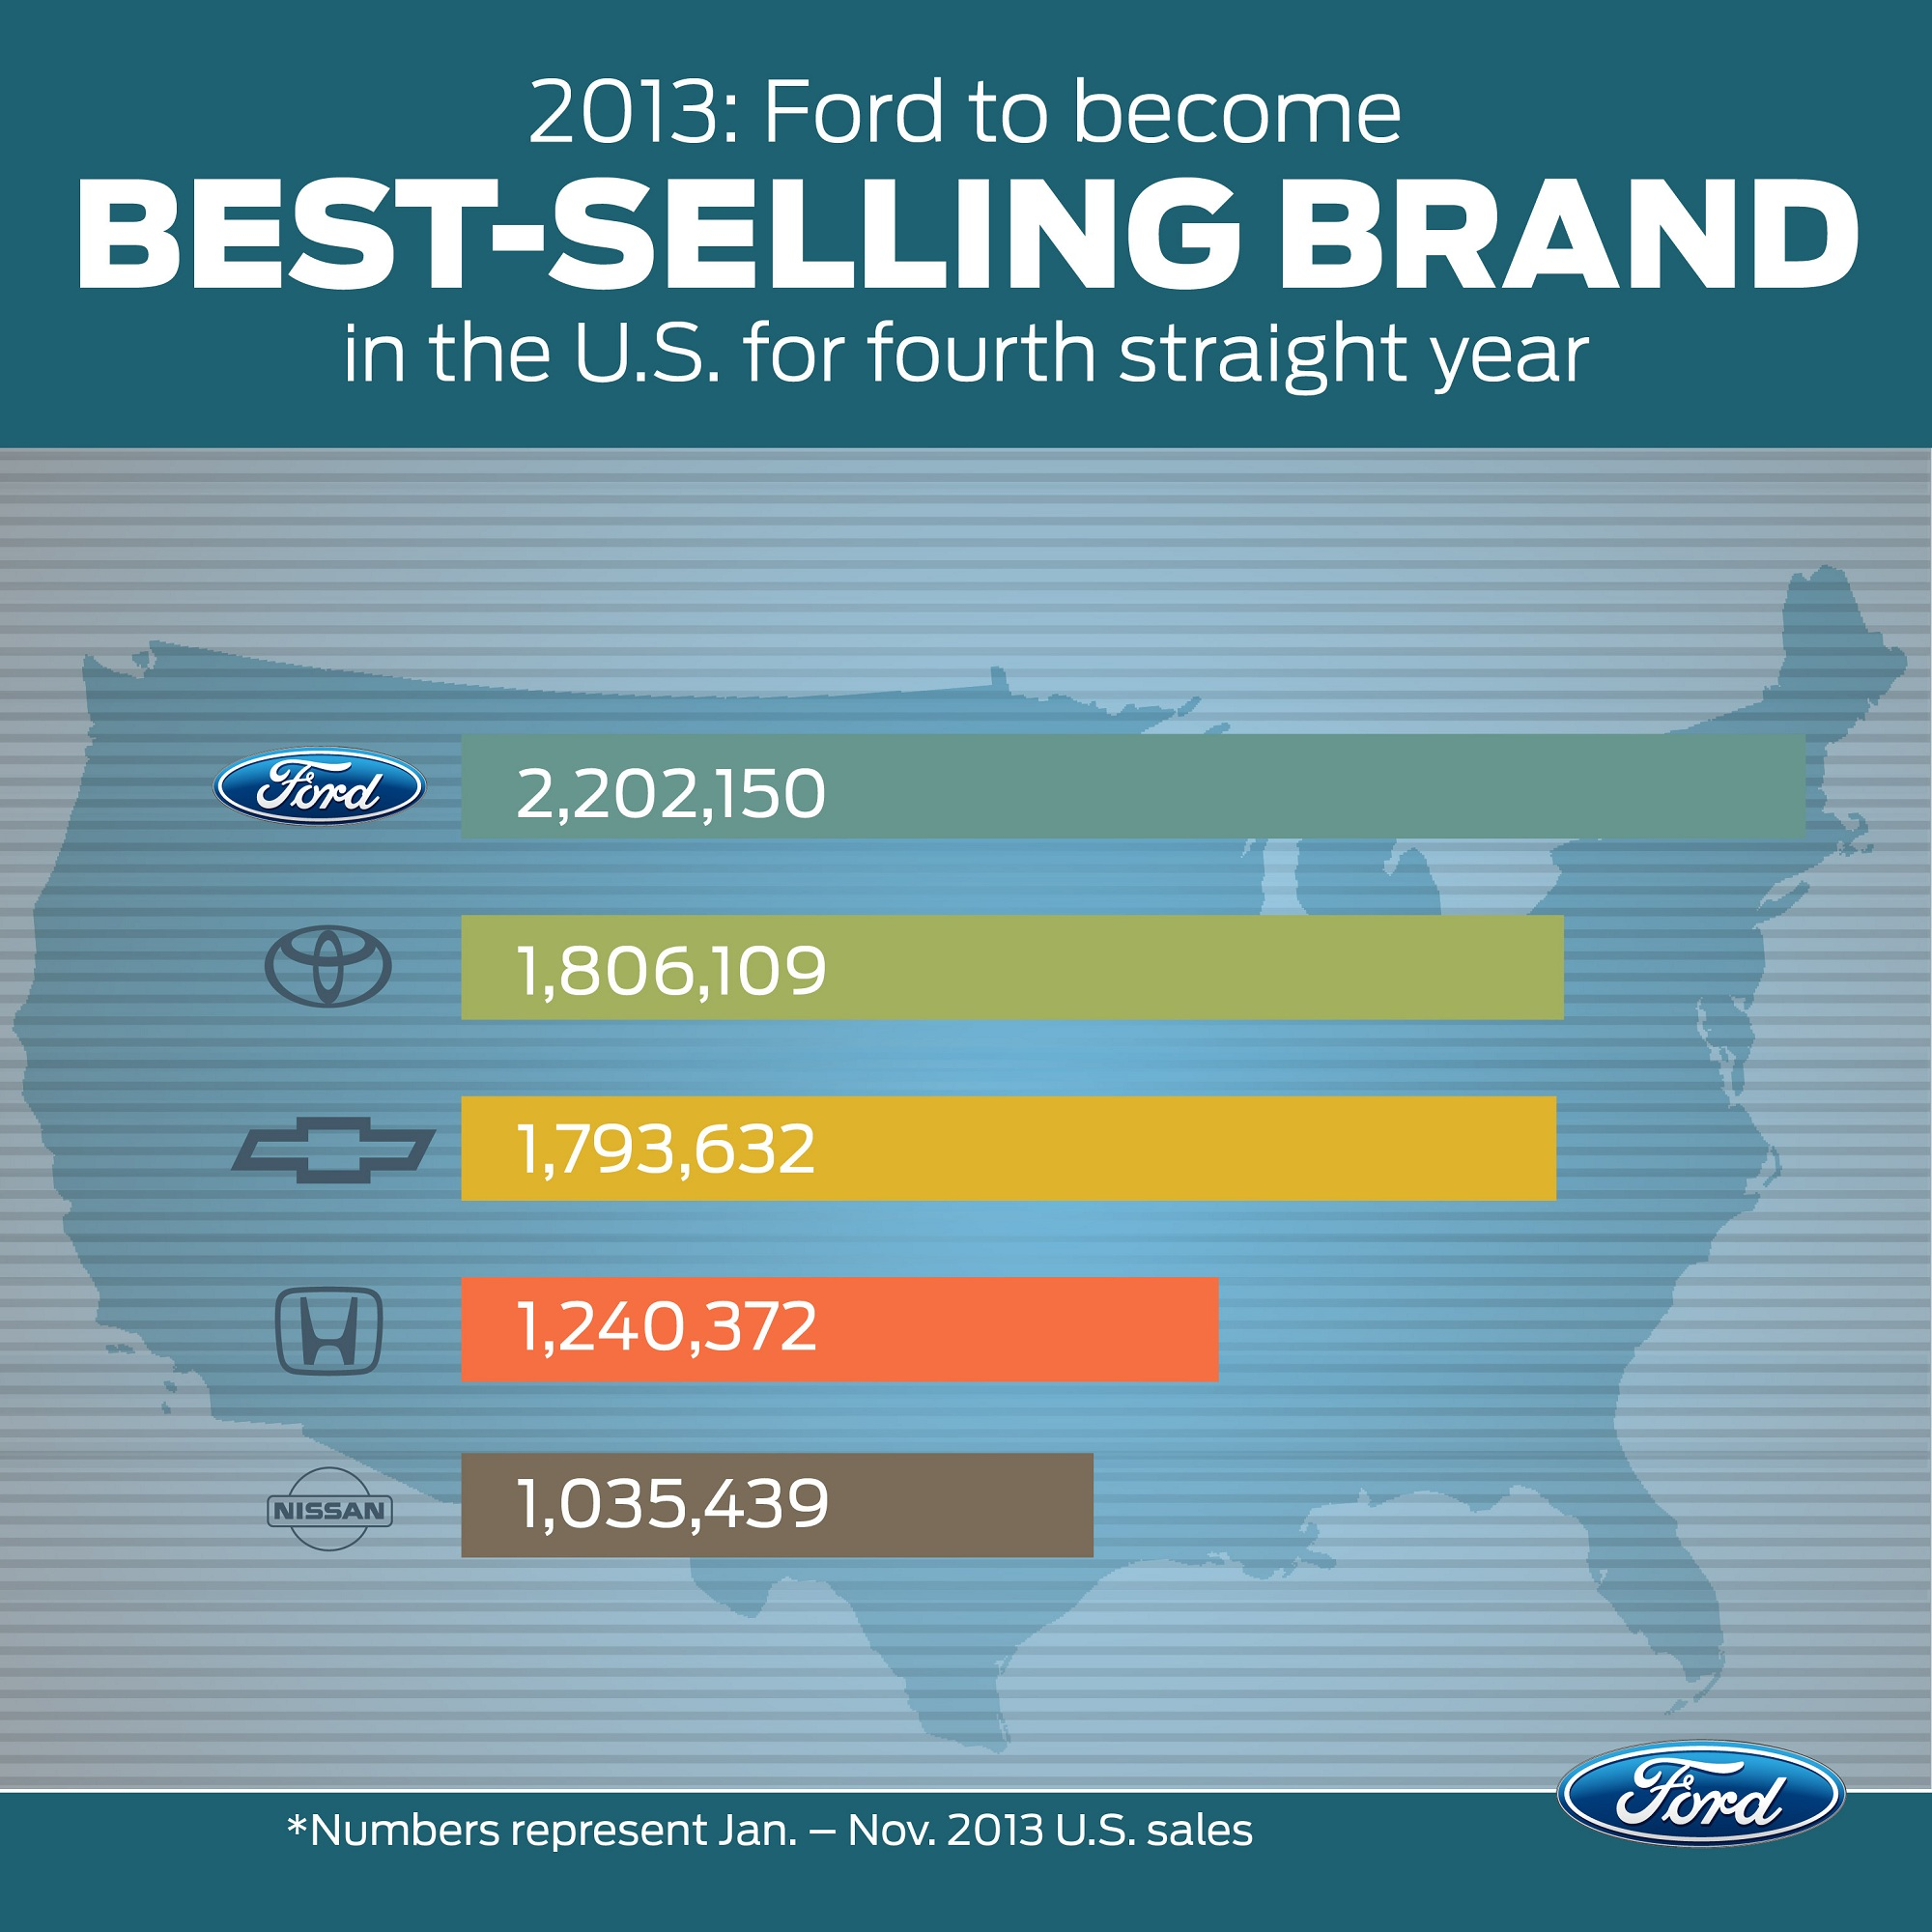 Ford Calls Shot, Expects Best-Selling Brand Title for 2013